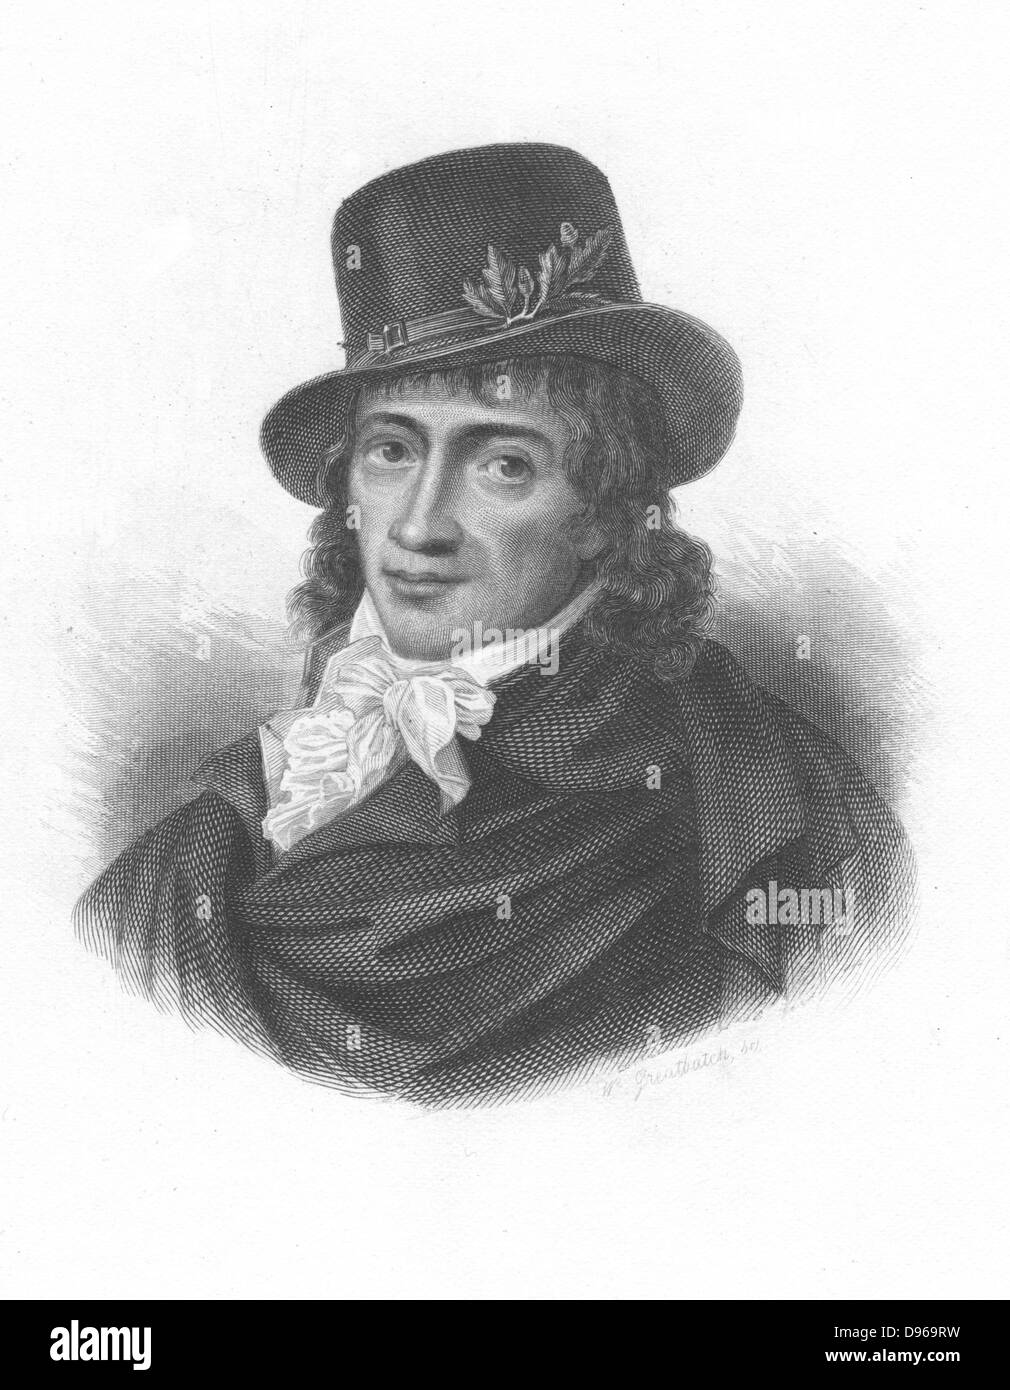 Camille Desmoulins (1760-94) French journalist and revolutionary. Writings in favour of clemency displeased Robespierre. - Stock Image